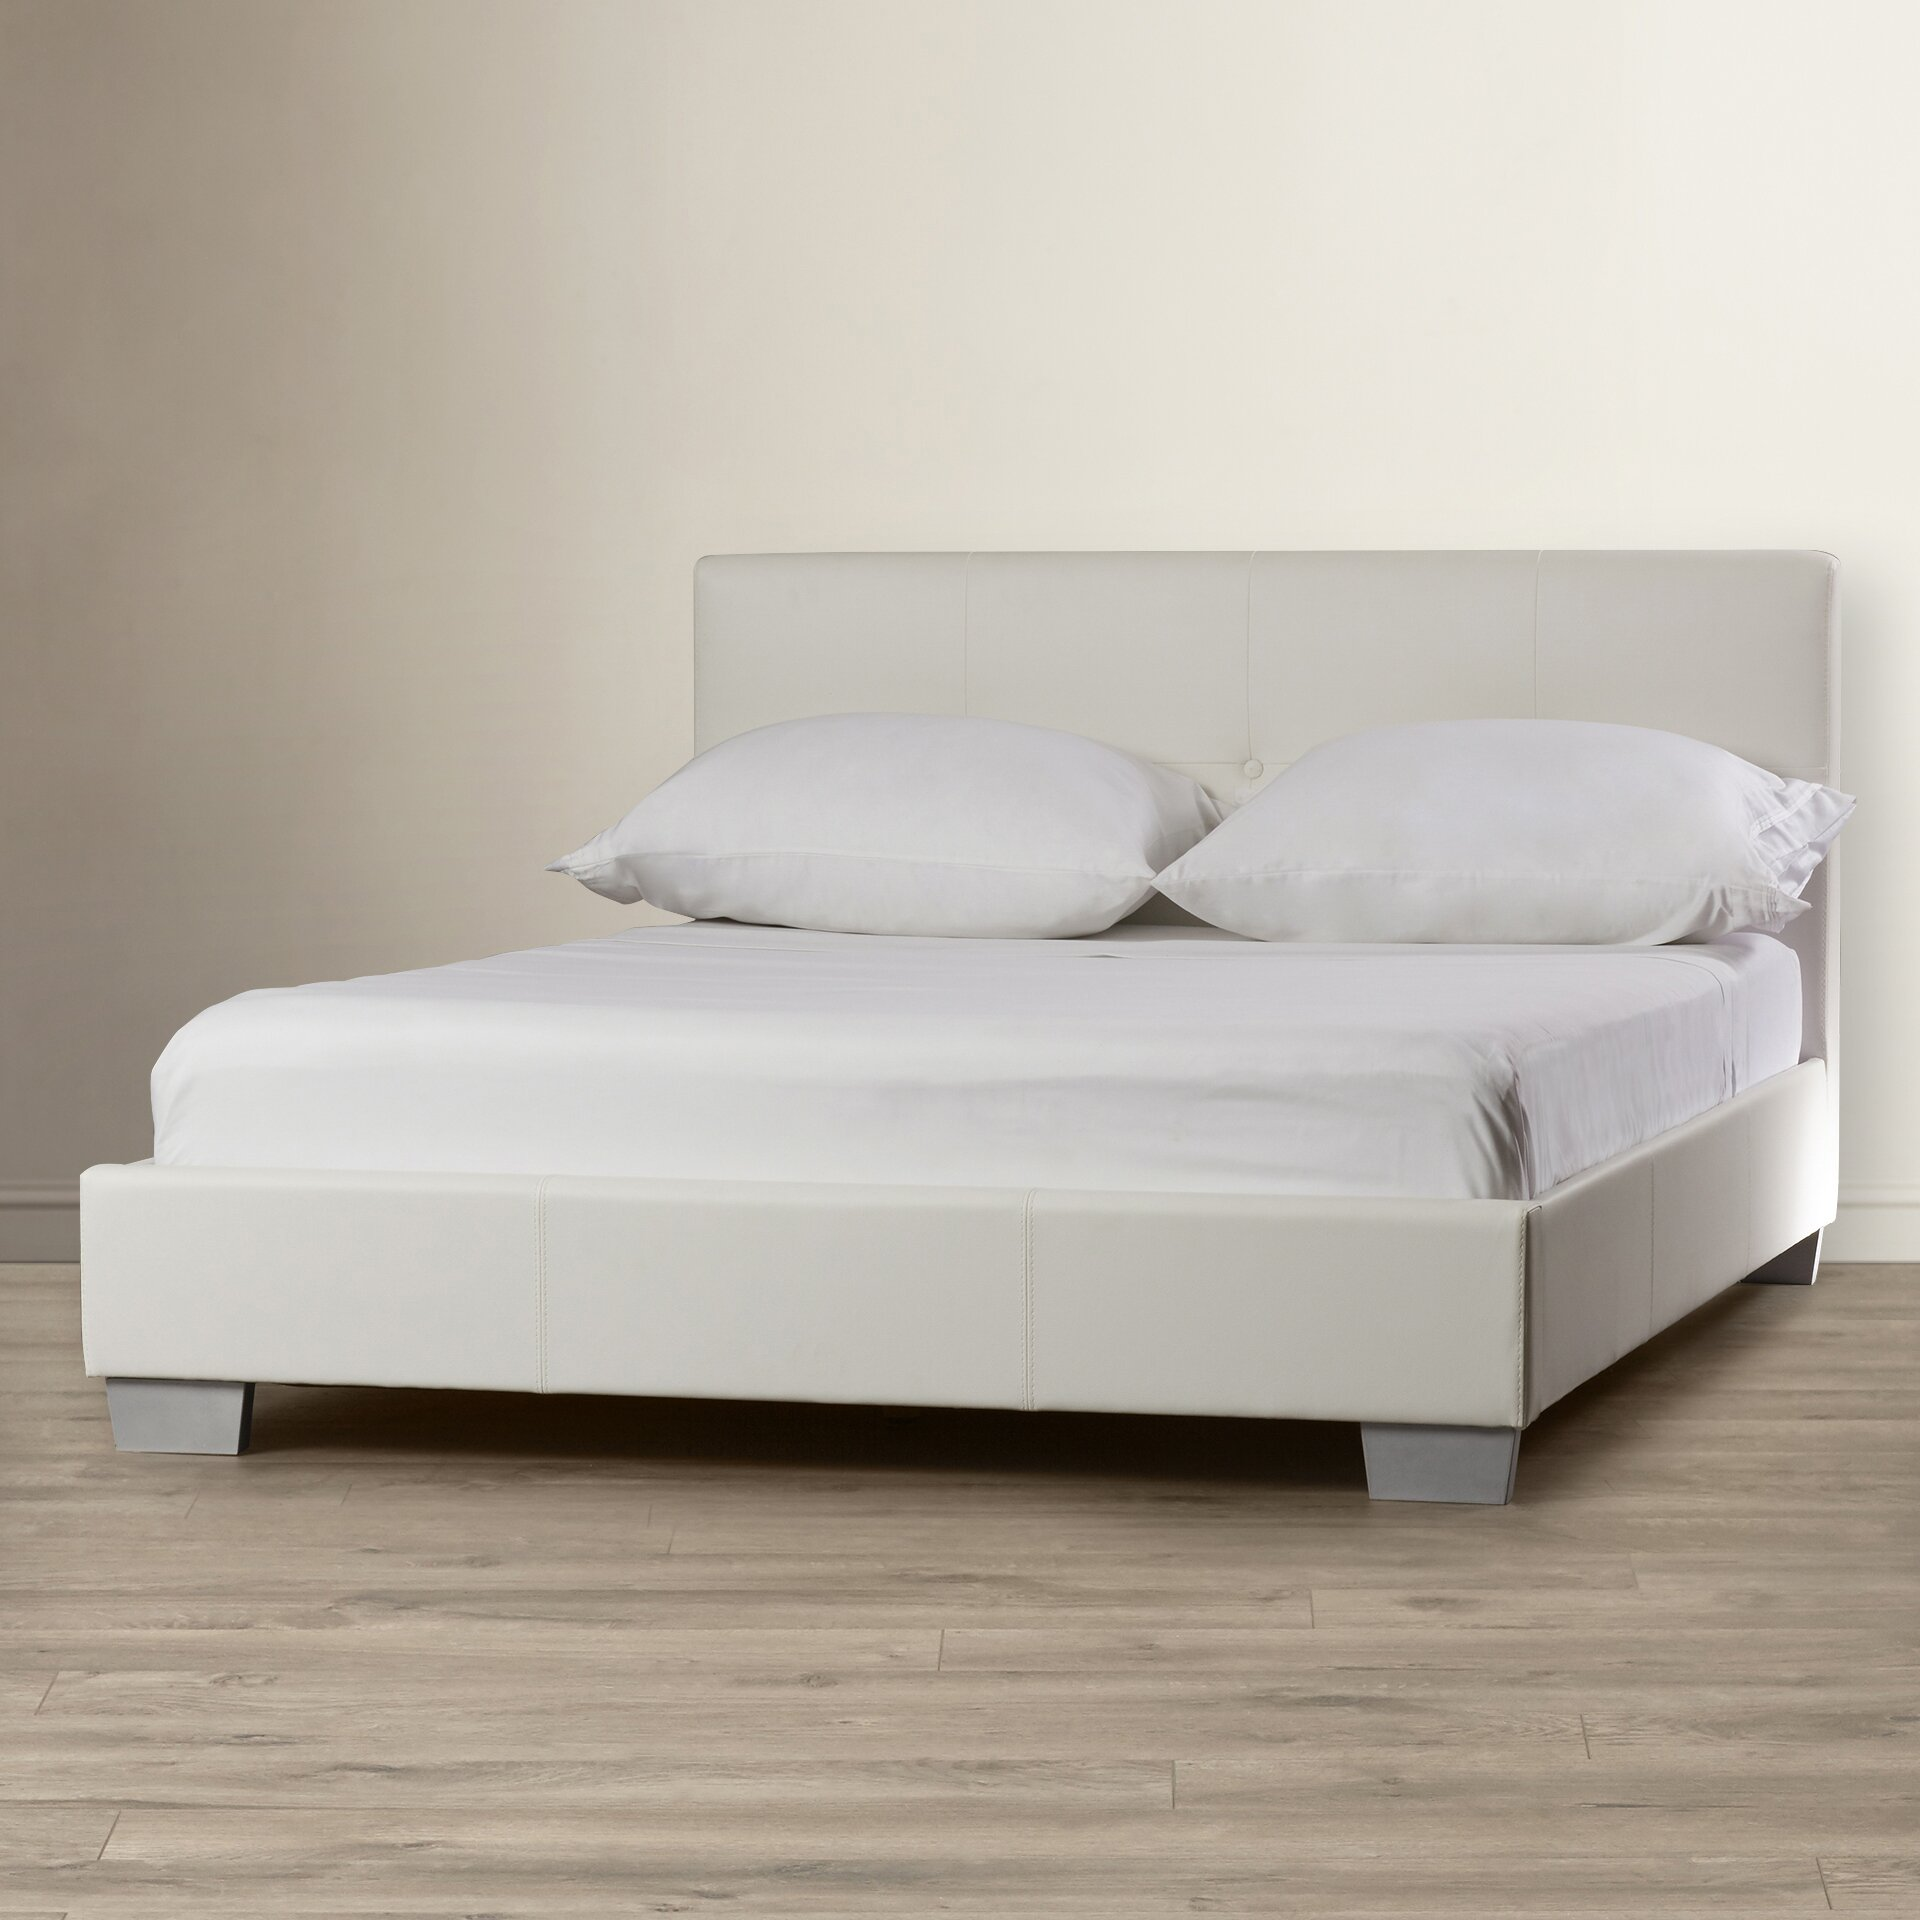 corrigan studio maisie upholstered platform bed